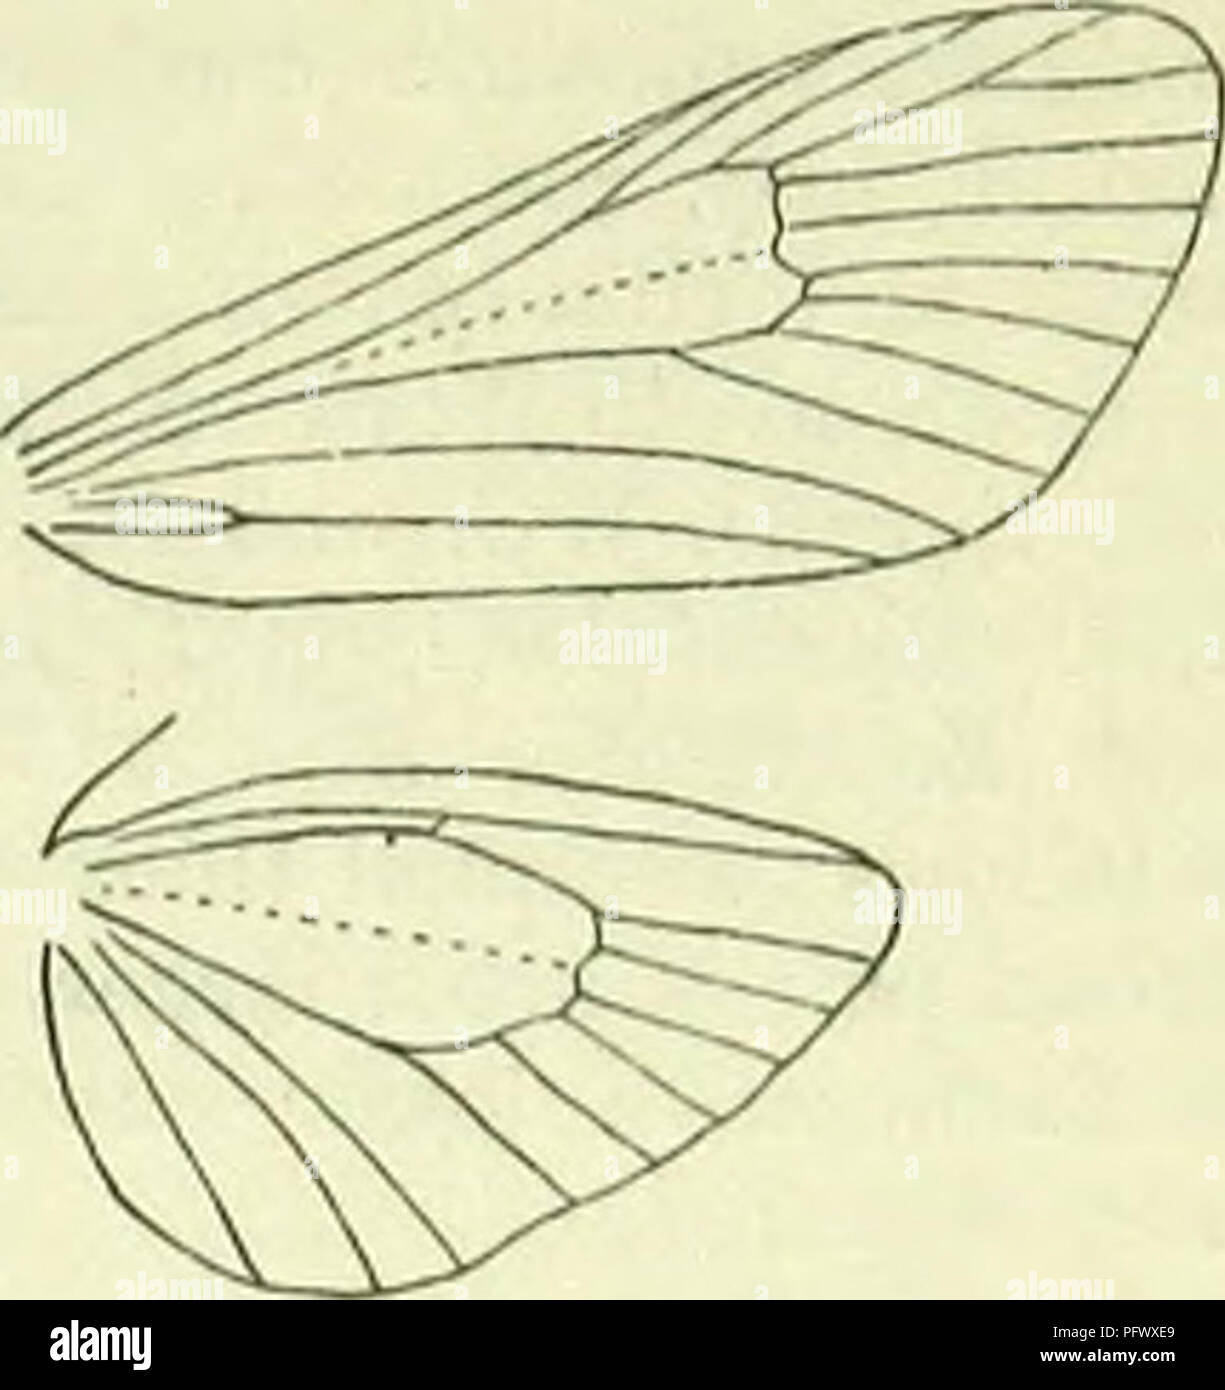 . A handbook of British lepidoptera. Lepidoptera. ZY!5AENA] ZYGAEN1DAE 447. Neuration of Zyguena trlfolii. thickened from base to about f or , thence tapering to apex, simple. Thorax densely hairy beneath. Abdomen hairy. Femora more or less hairy beneath, tibiae smooth - scaled, all spurs present, short. Forewings : 8 and 9 stalked. Hindwings: 6 and 7 sometimes connate, upper margin of cell angulated at connection. The genus is extensive, but con- fined to Europe, N. and C. Asia, Japan, and N. Africa, its range coinciding exactly with the limits of the Palaearctic region. Imago with forewings - Stock Image